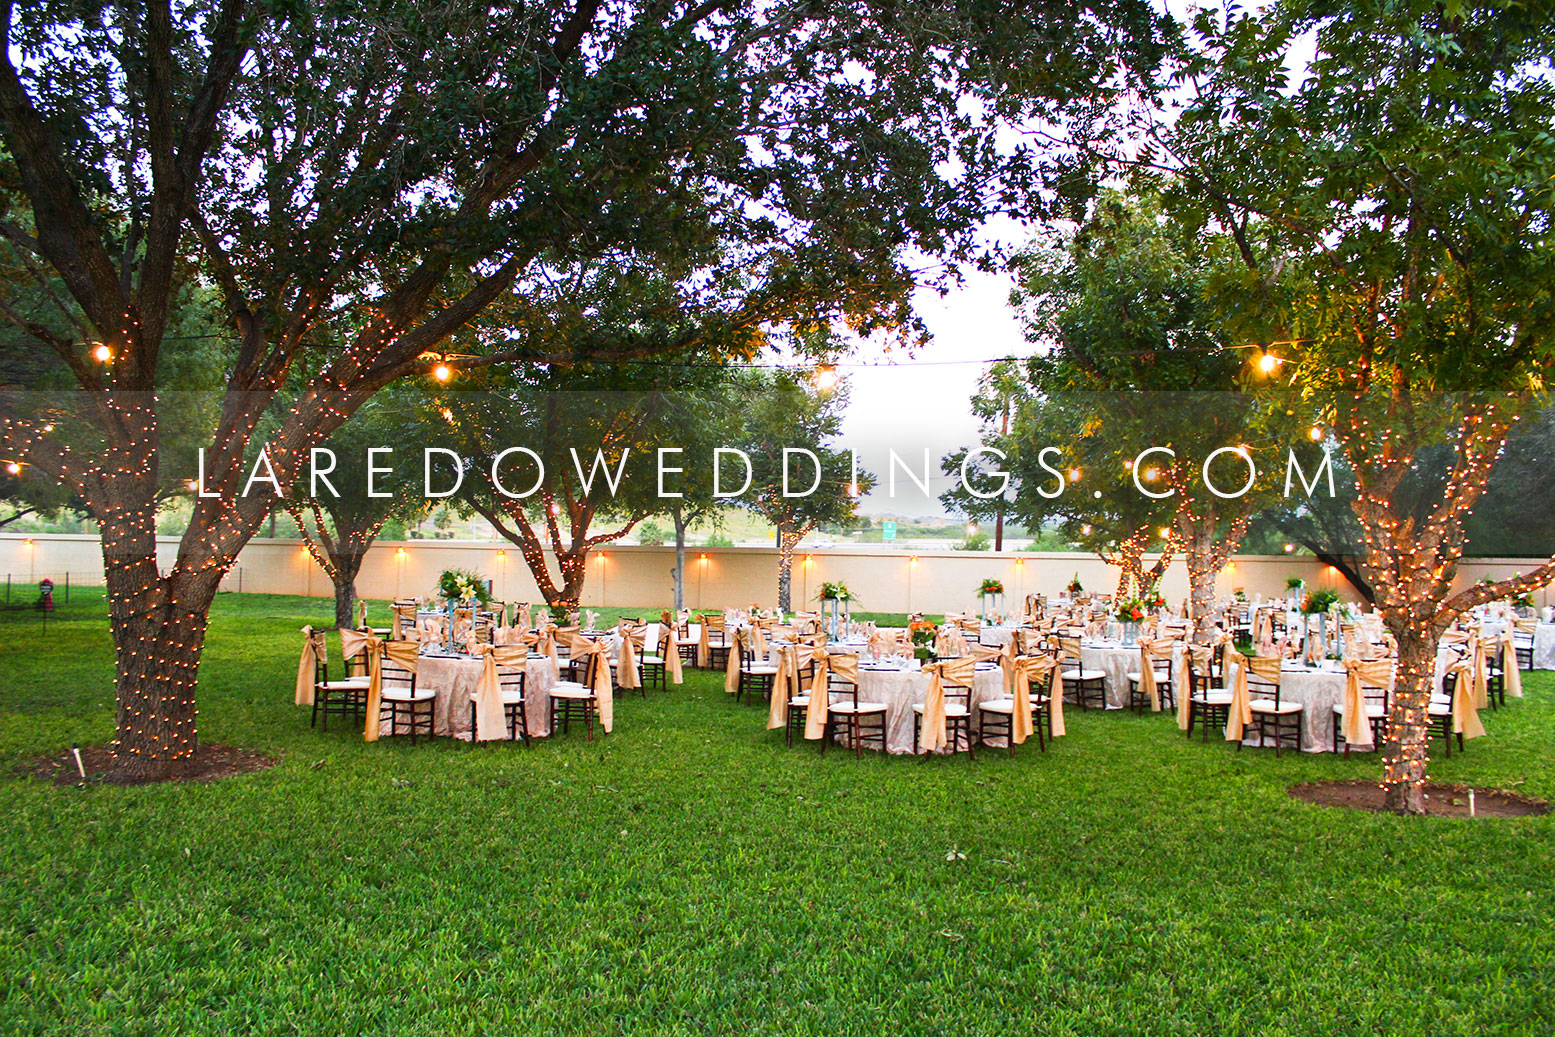 Country Chic at Los Patios – Laredo Weddings and Quinces